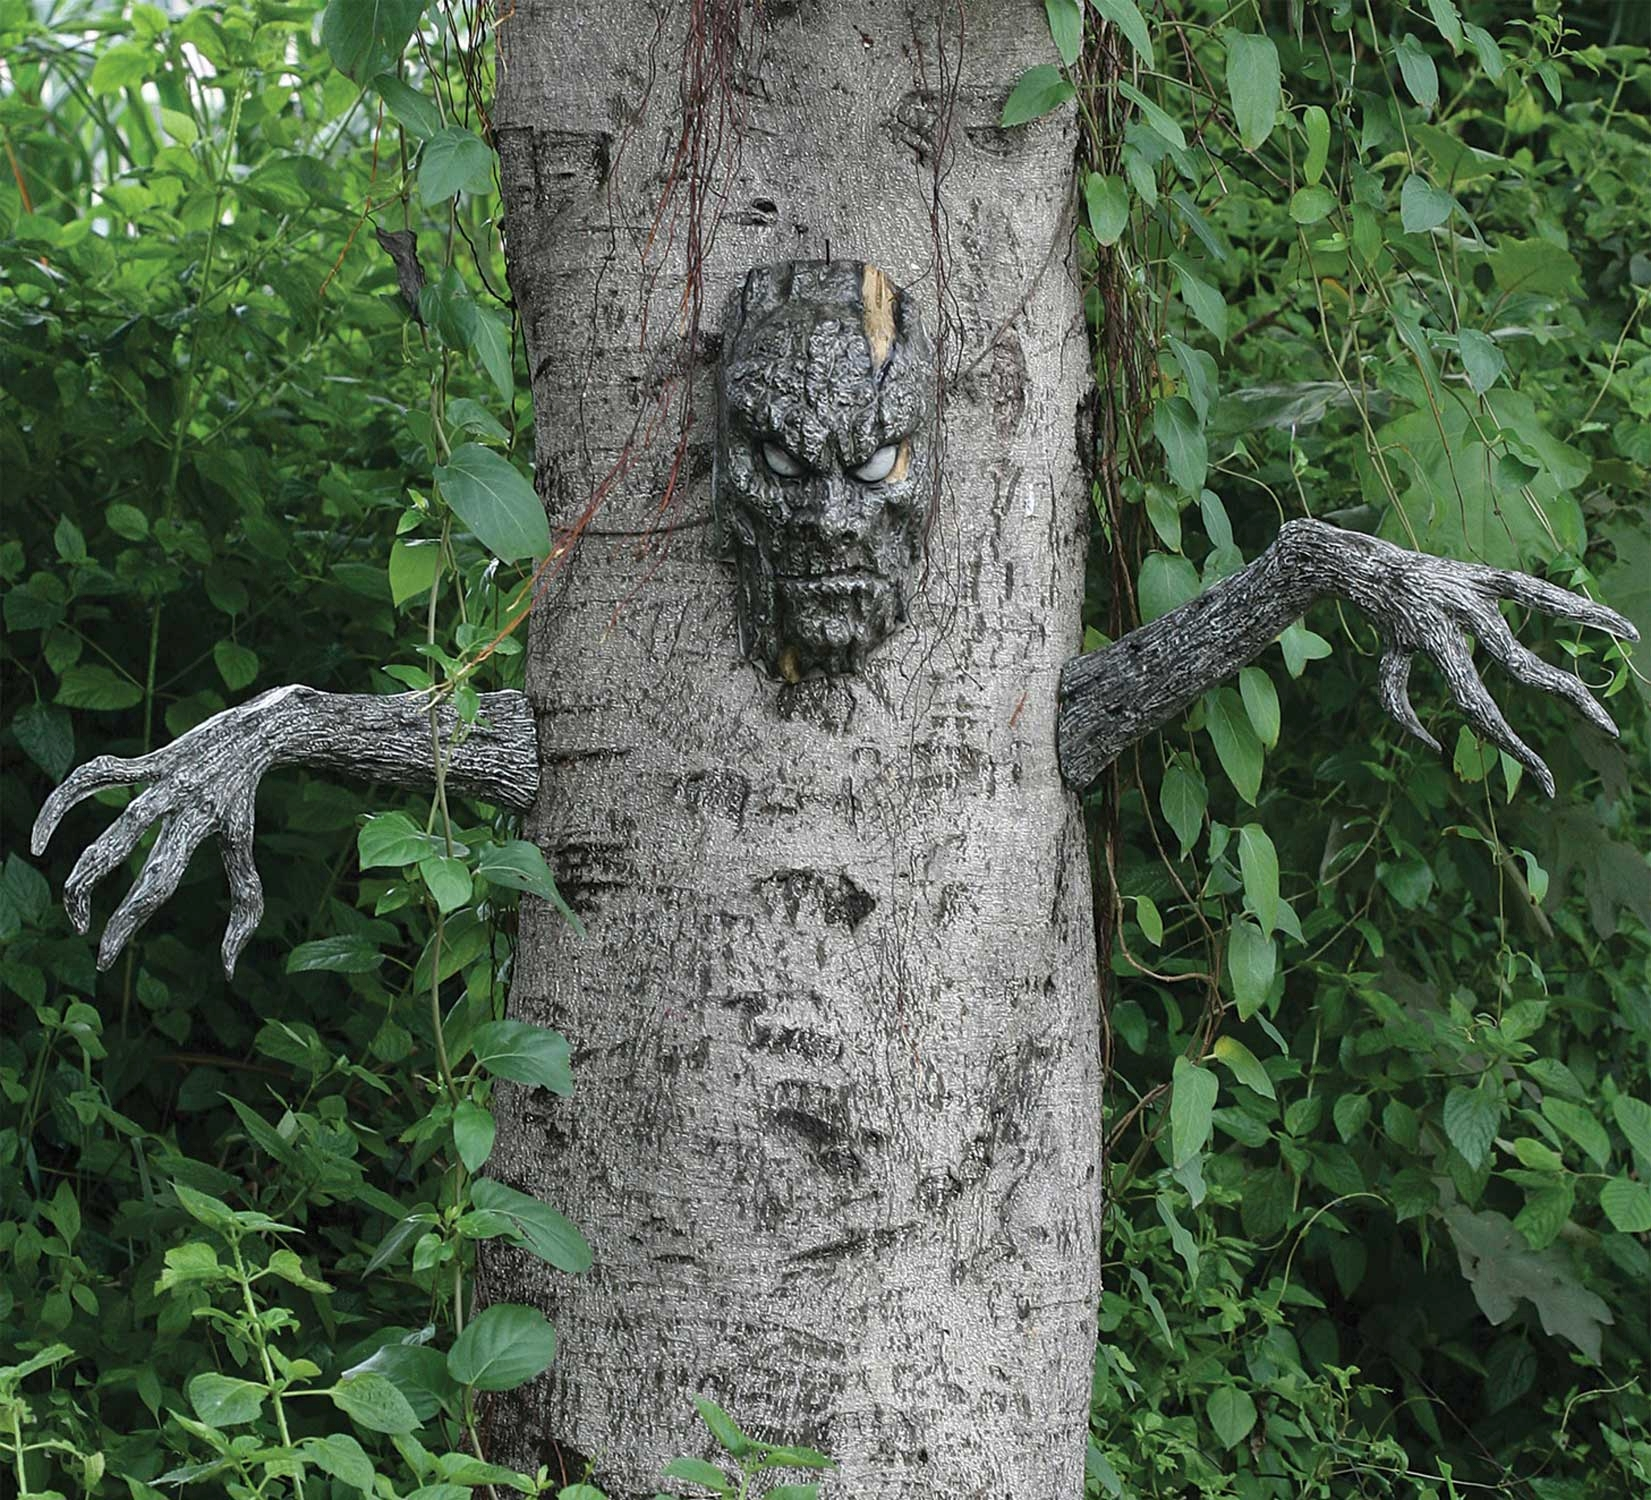 realistic spooky living tree man decor haunted forest prop creepy halloween indoor outdoor graveyard cemetery yard - Scary Halloween Yard Decorations